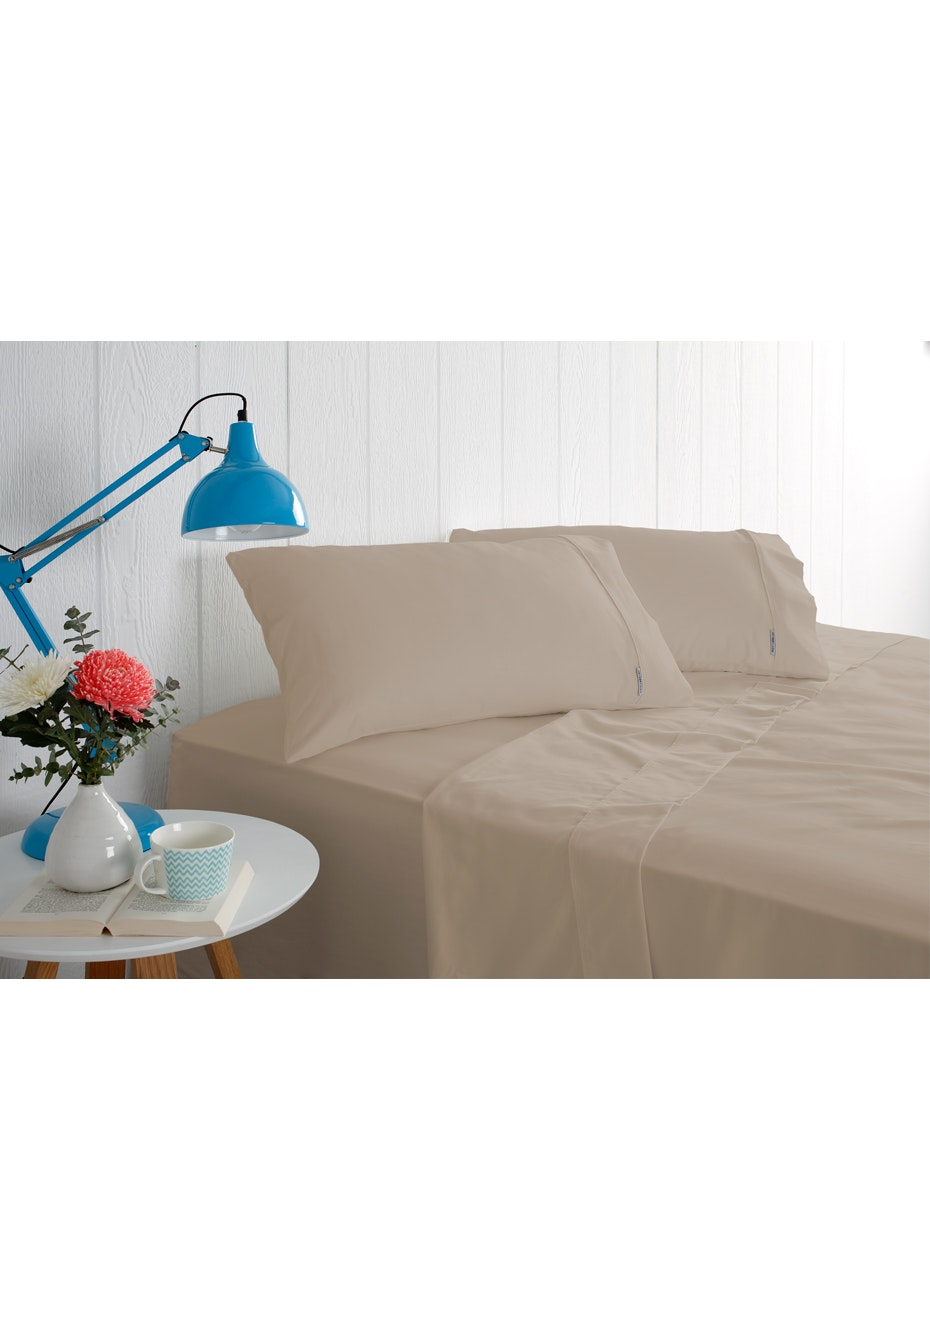 Odyssey Living 1000 Thread Count – Cotton Rich Sheet Sets - Linen - Double Bed